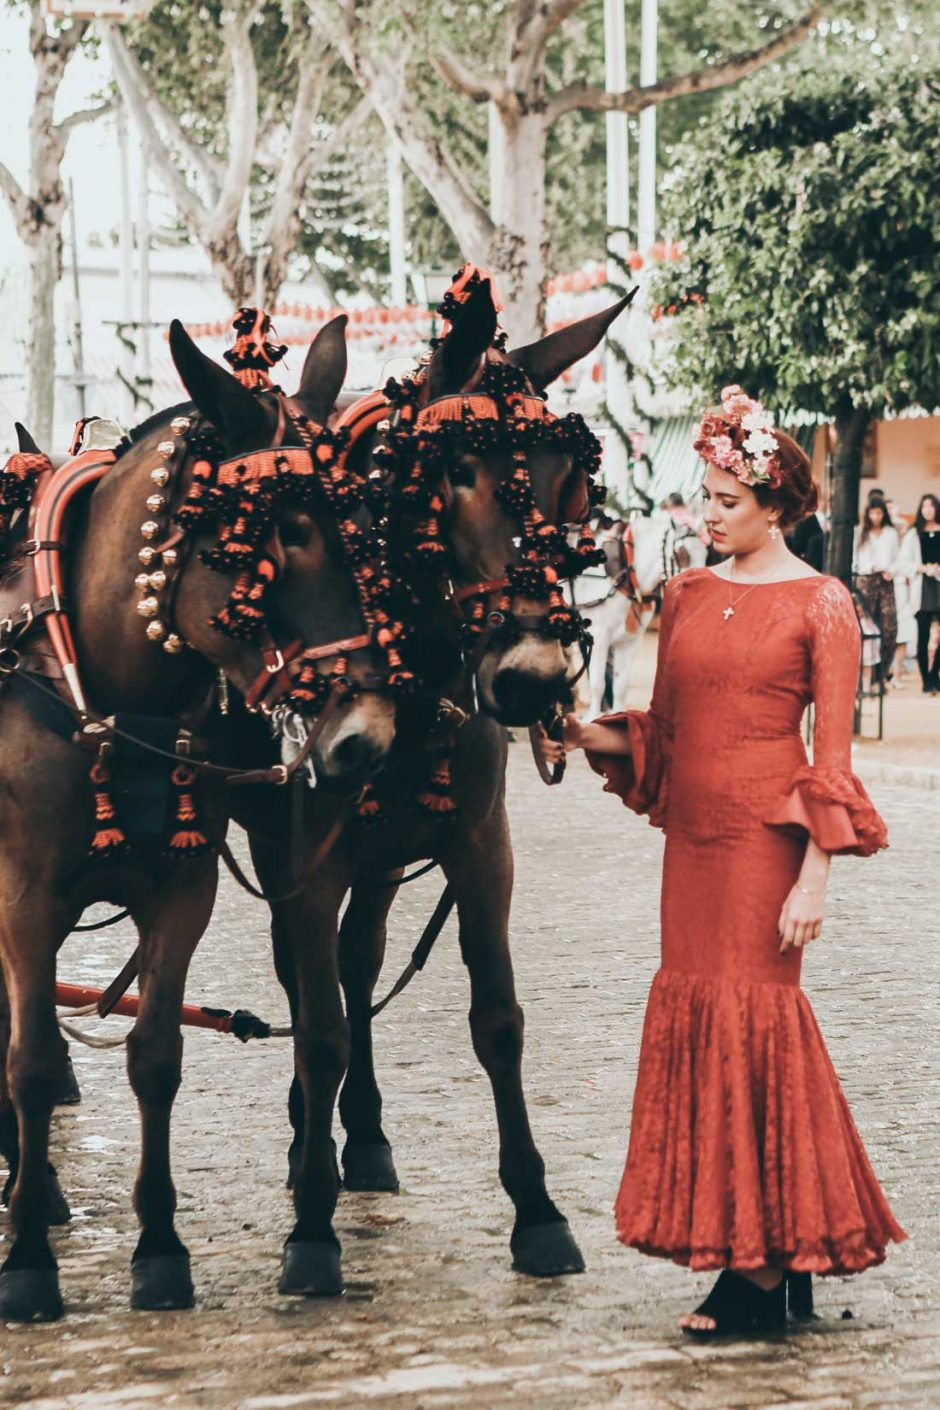 Traditional April Fair in Seville